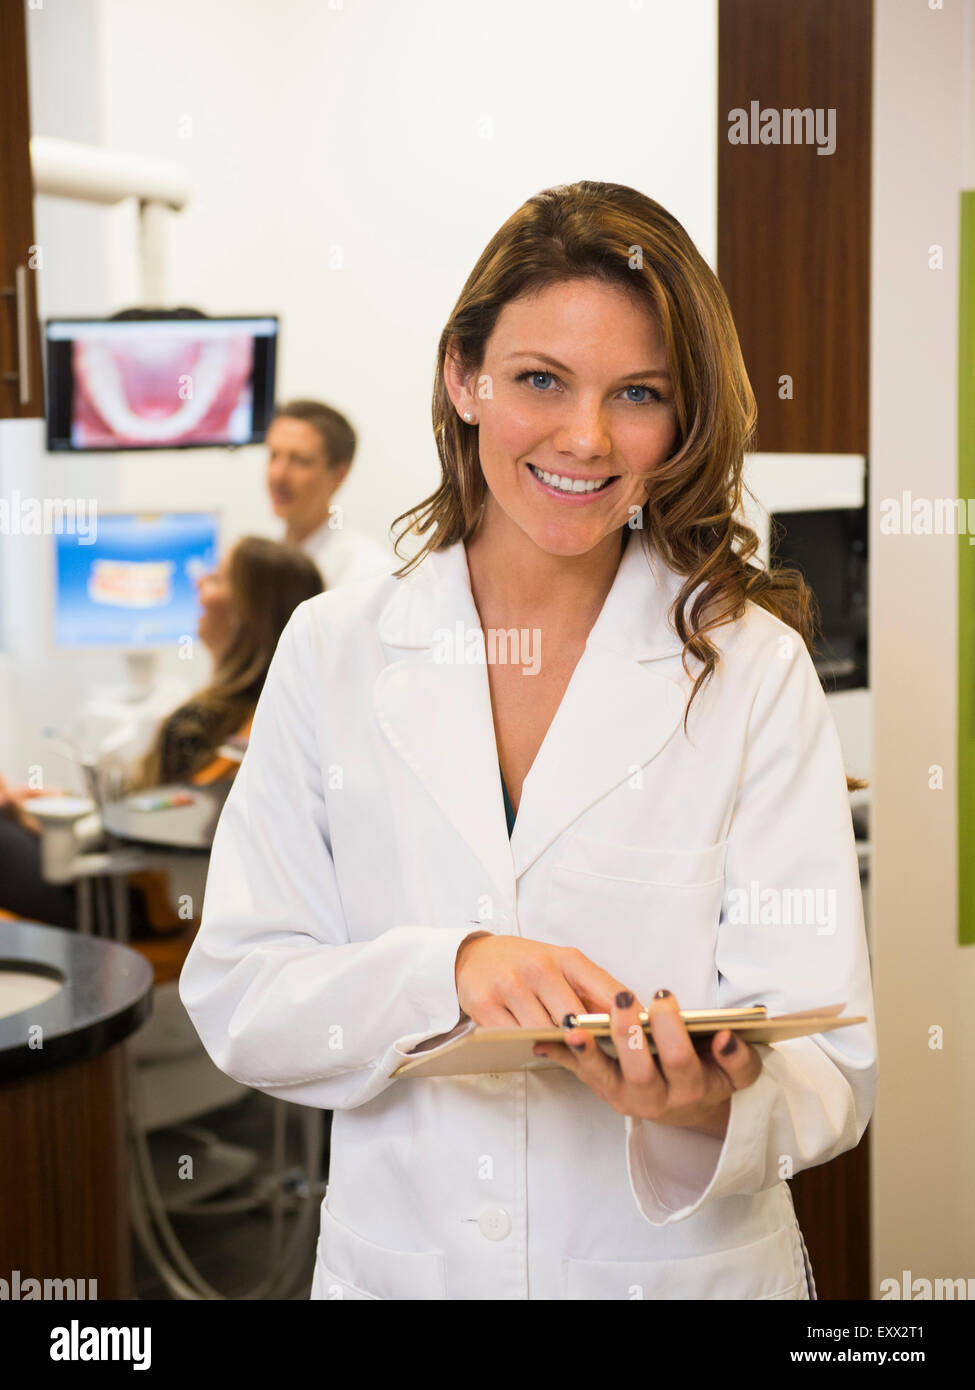 Portrait of dentist with colleague and patient in background - Stock Image